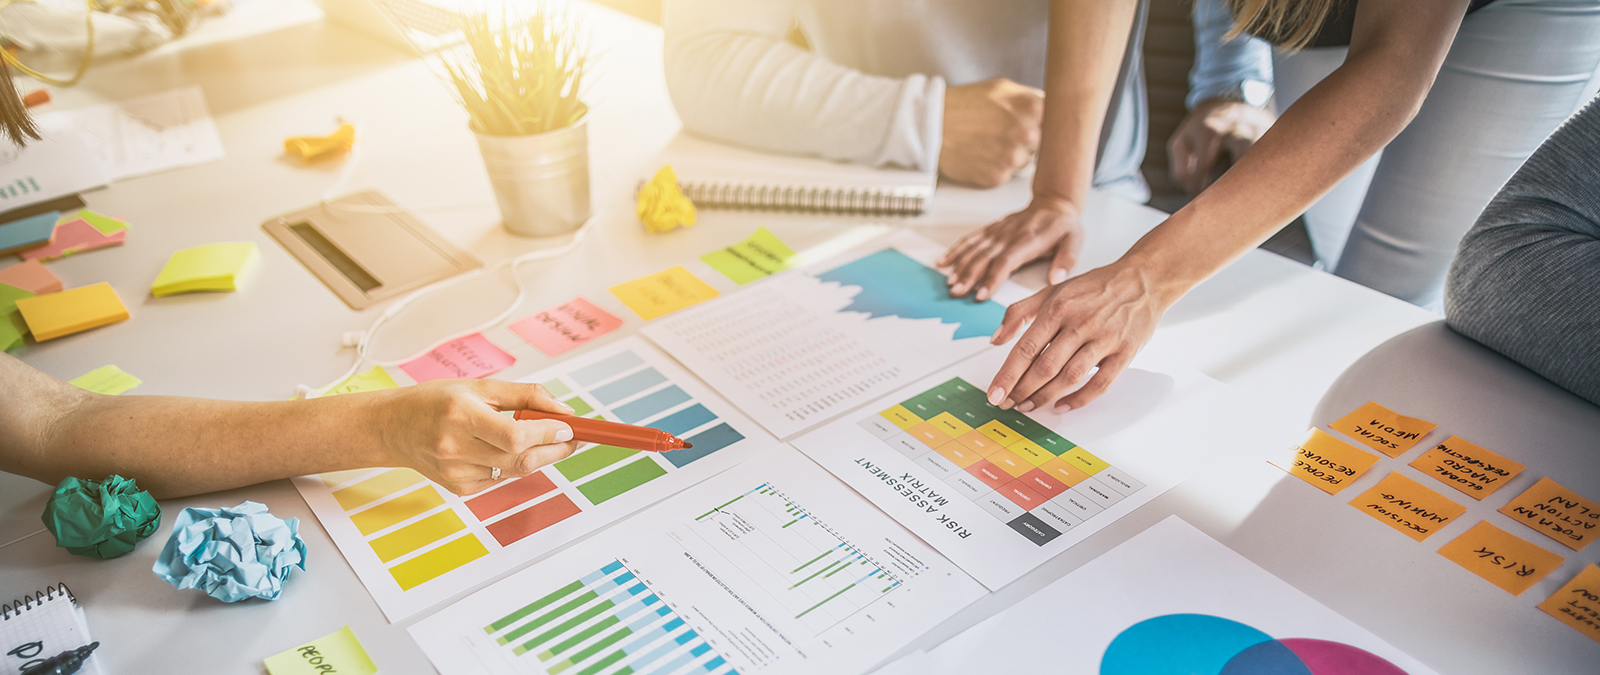 The Complete Guide to Creating a Killer Ecommerce Marketing Plan